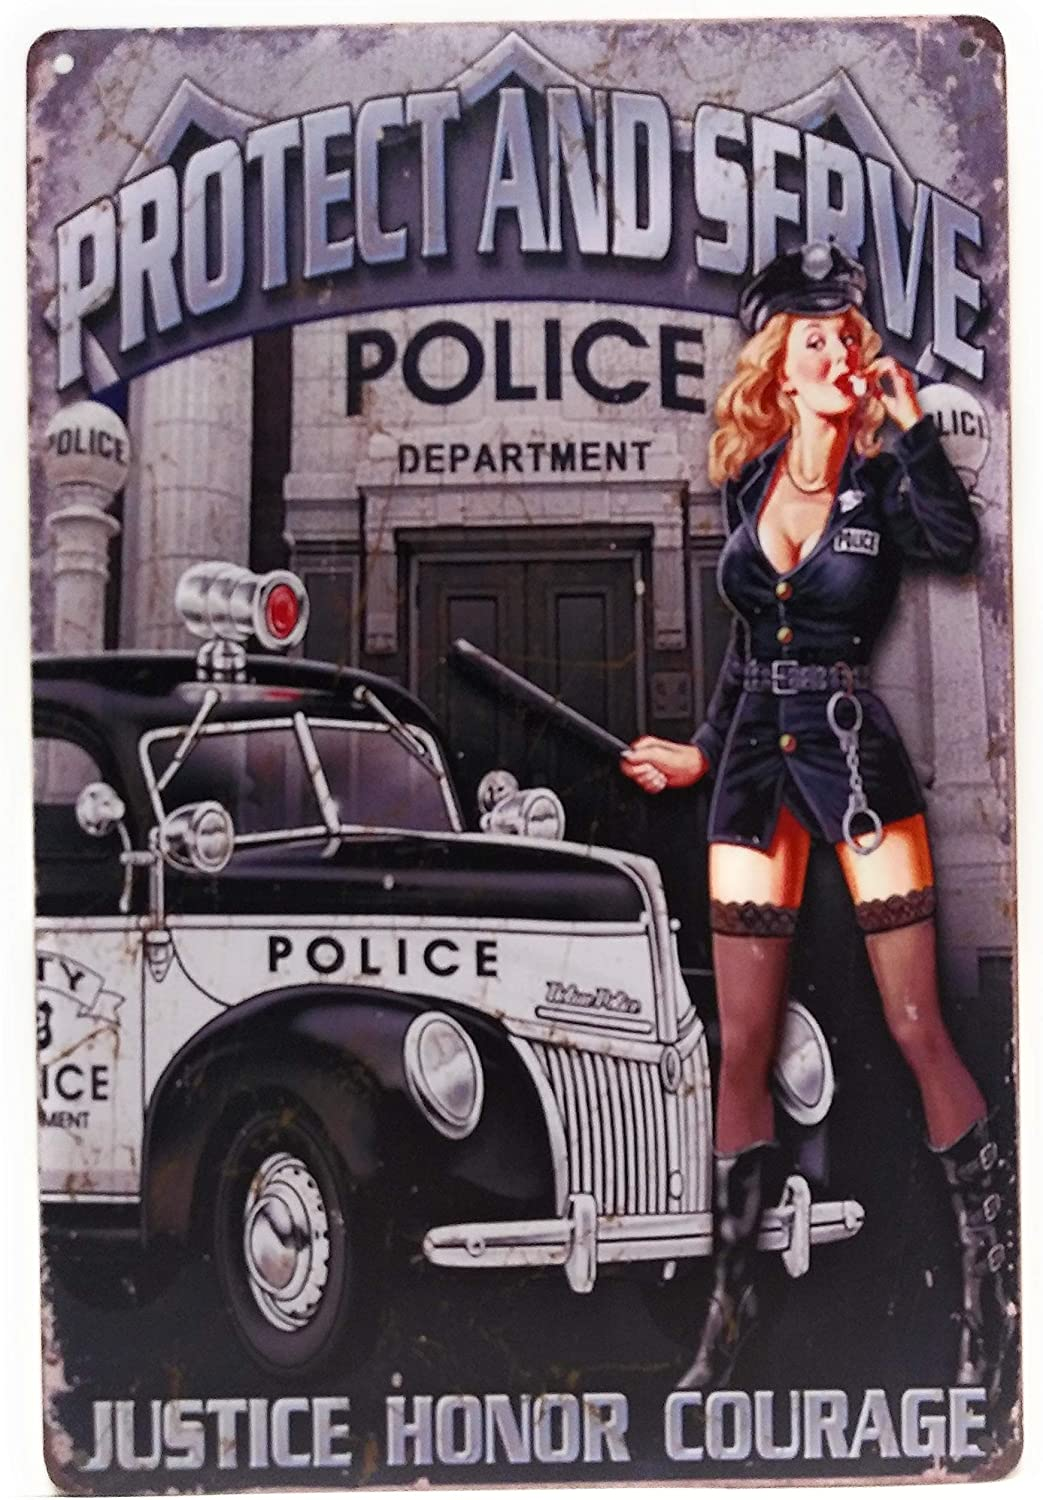 Protect And Serve. Justice, Honor Courage. Vintage Retro Police Tin Sign, Police Decor, Retro Sign, Vintage Police Sign, Protect Sign, 8-inch by 12-inch Sign | TSC435 |